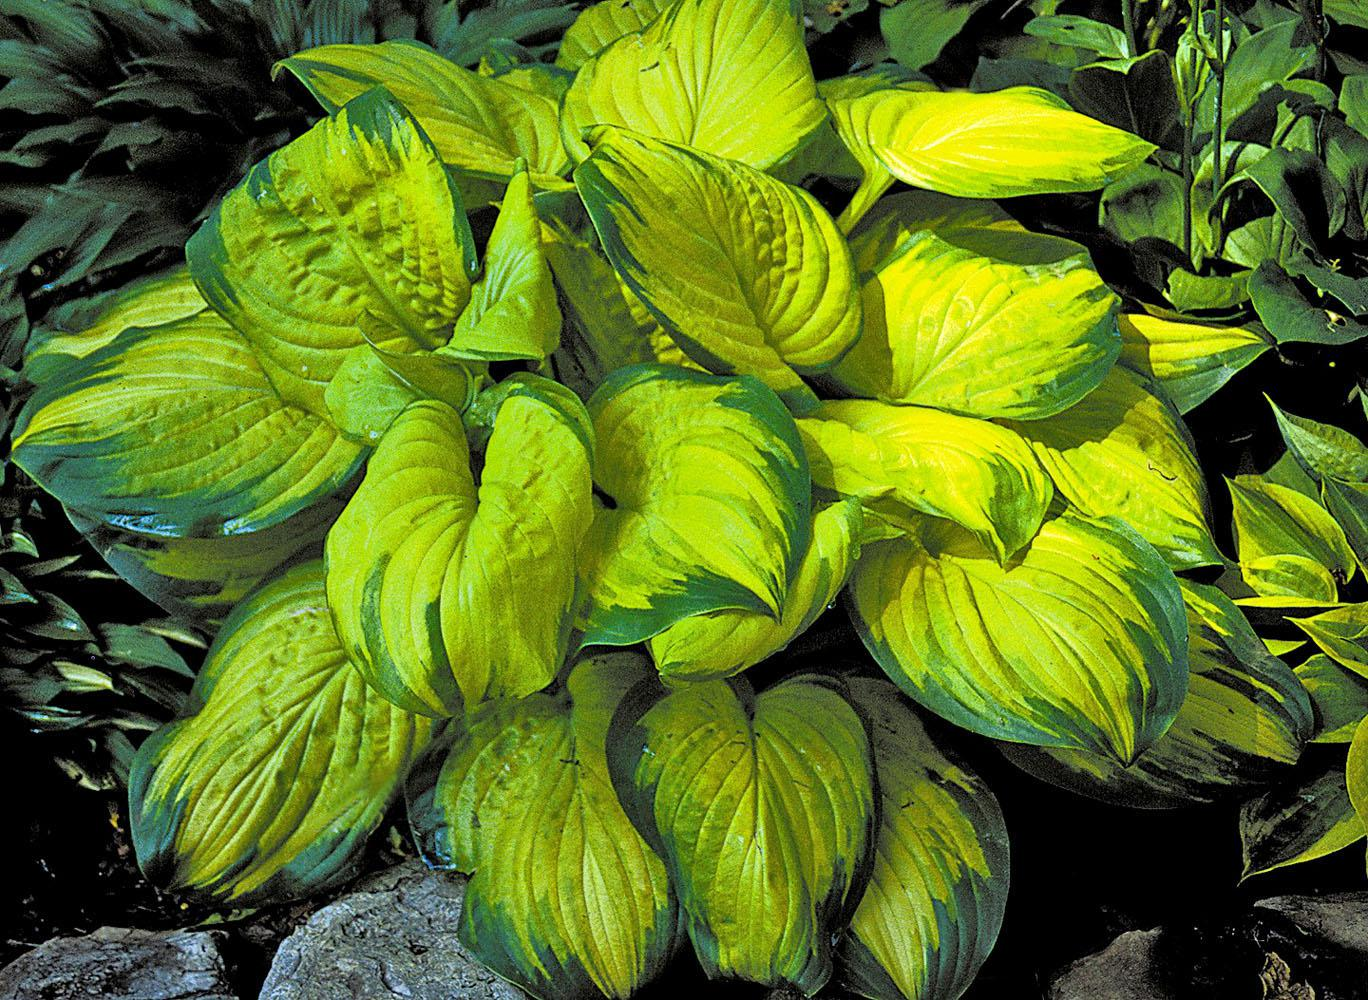 """Stained Glass has brilliant shiny golden foliage surrounded by a 2-inch wide, dark-green margin. The American Hosta Growers Association has chosen Stained Glass as the 2006 """"Hosta of the Year."""""""